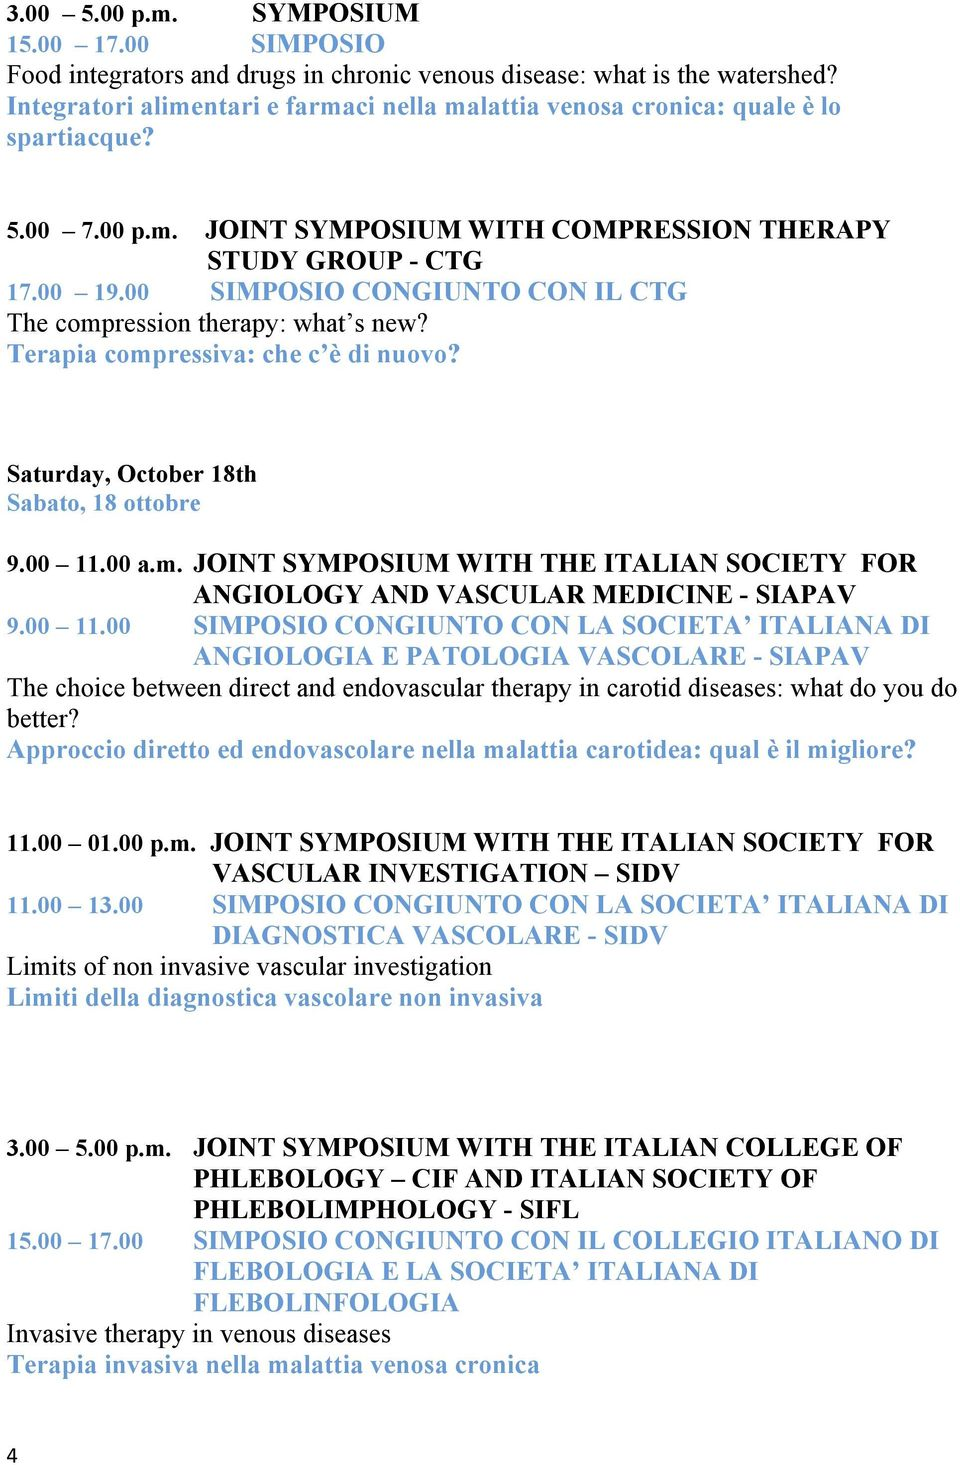 00 SIMPOSIO CONGIUNTO CON IL CTG The compression therapy: what s new? Terapia compressiva: che c è di nuovo? Saturday, October 18th Sabato, 18 ottobre 9.00 11.00 a.m. JOINT SYMPOSIUM WITH THE ITALIAN SOCIETY FOR ANGIOLOGY AND VASCULAR MEDICINE - SIAPAV 9.